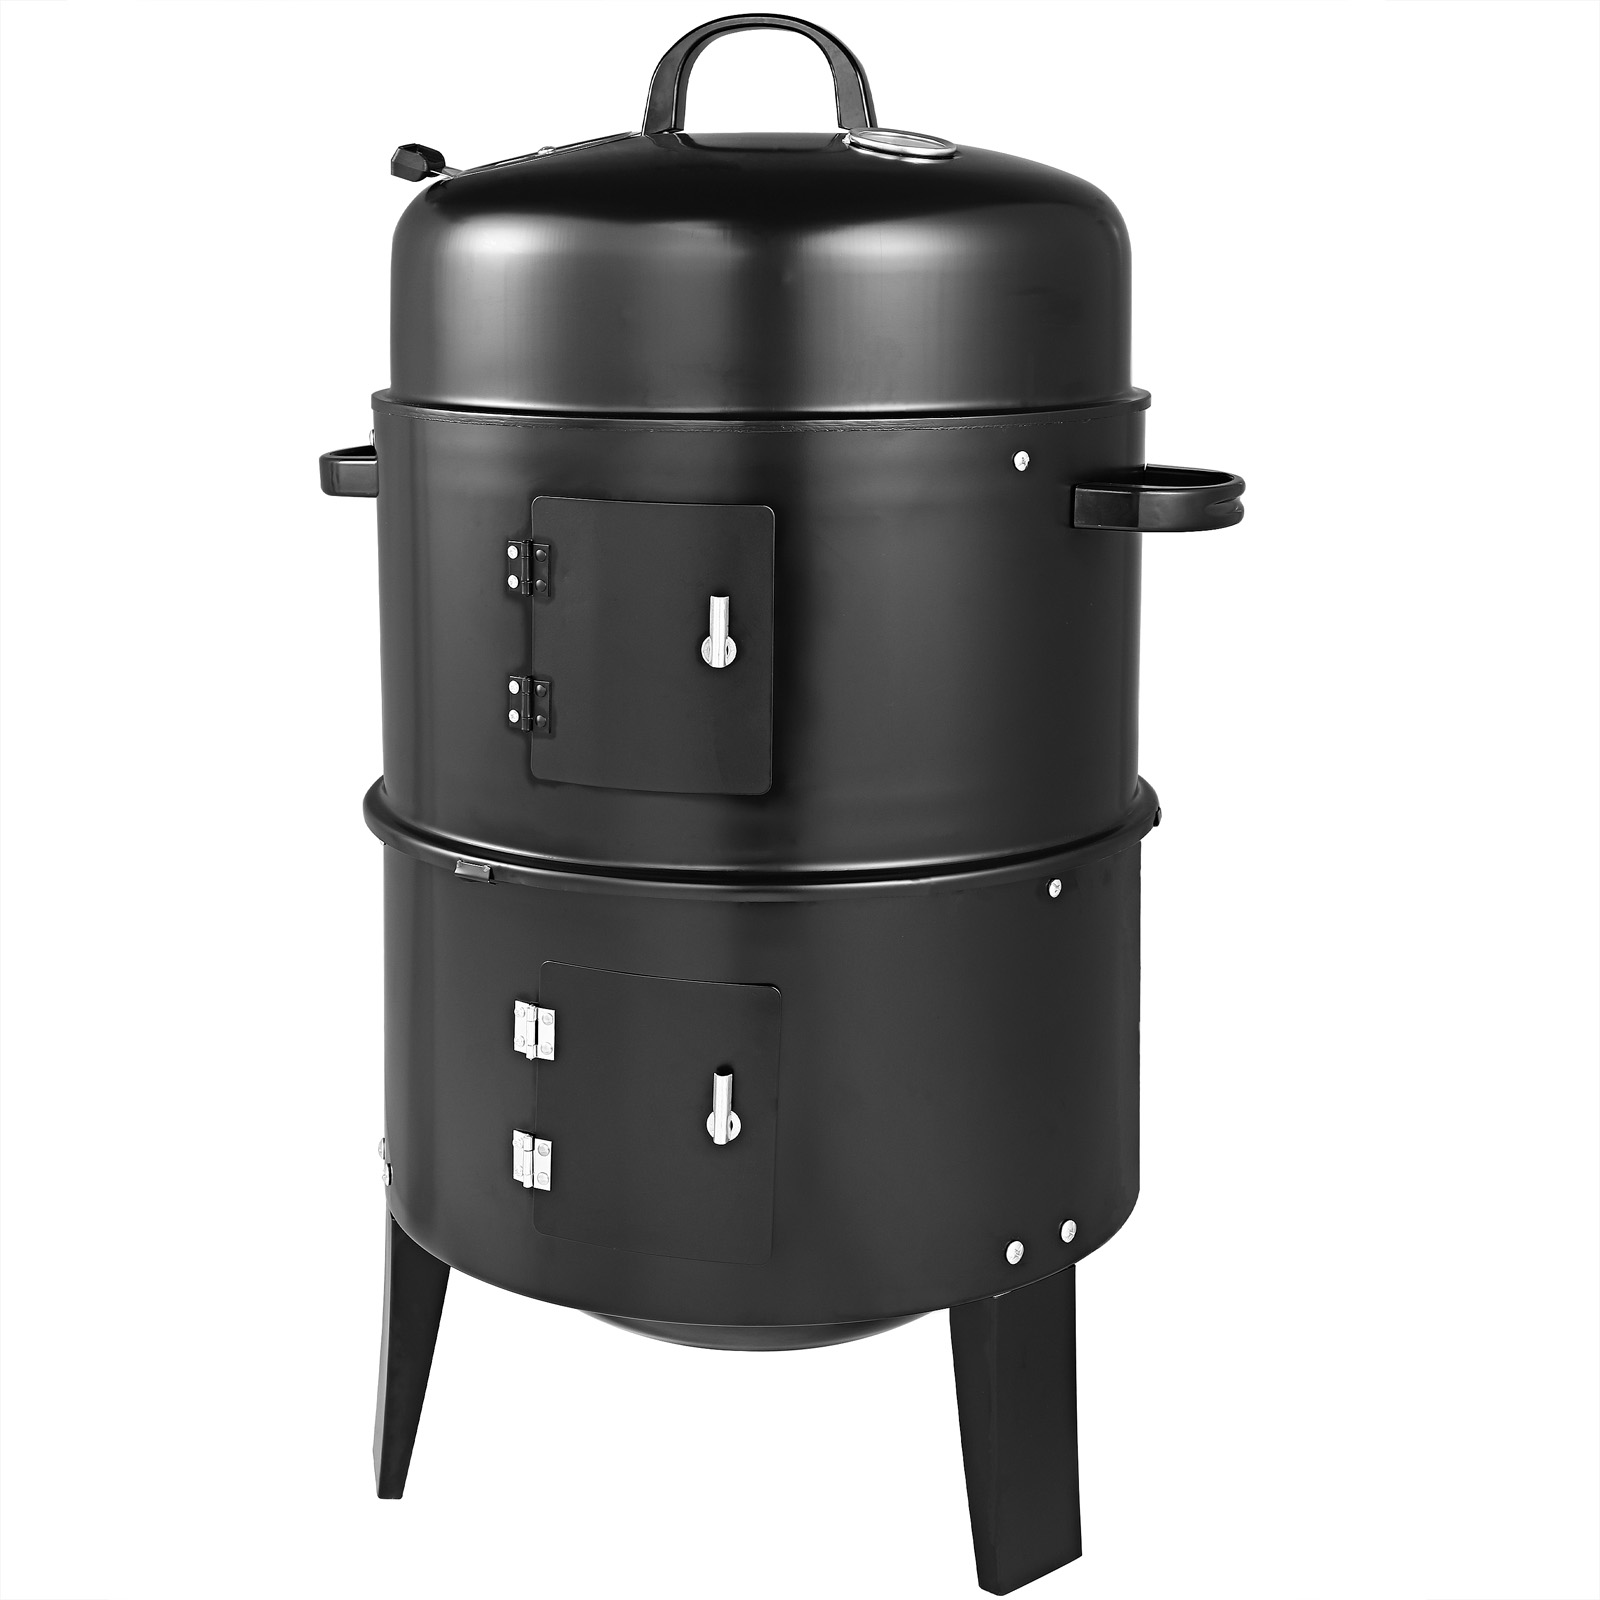 bbq barbecue smoker round smoking and grilling with thermometer garden ebay. Black Bedroom Furniture Sets. Home Design Ideas